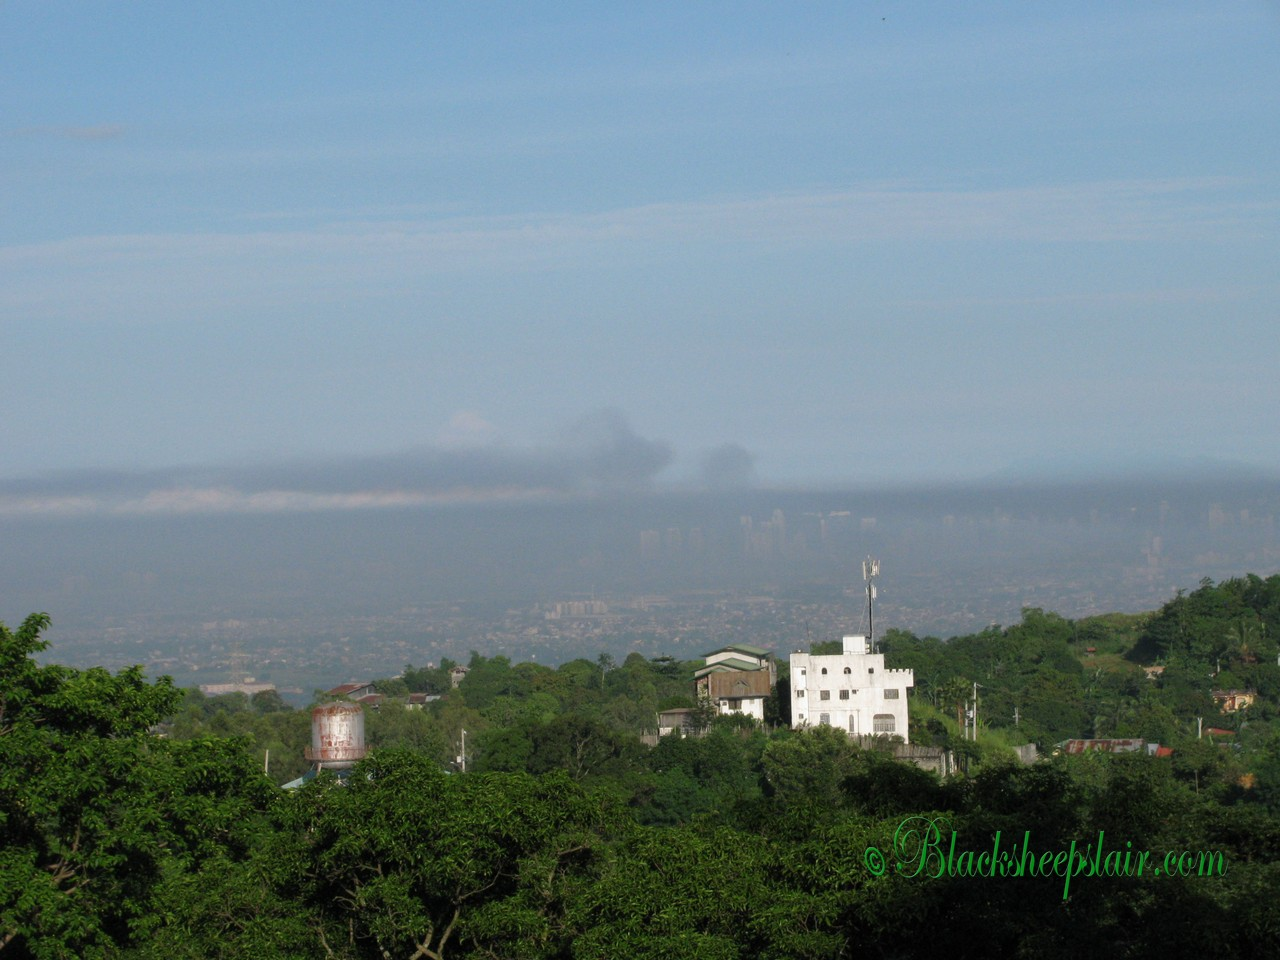 Look at the pollution in Manila, I can't even see the buildings. So